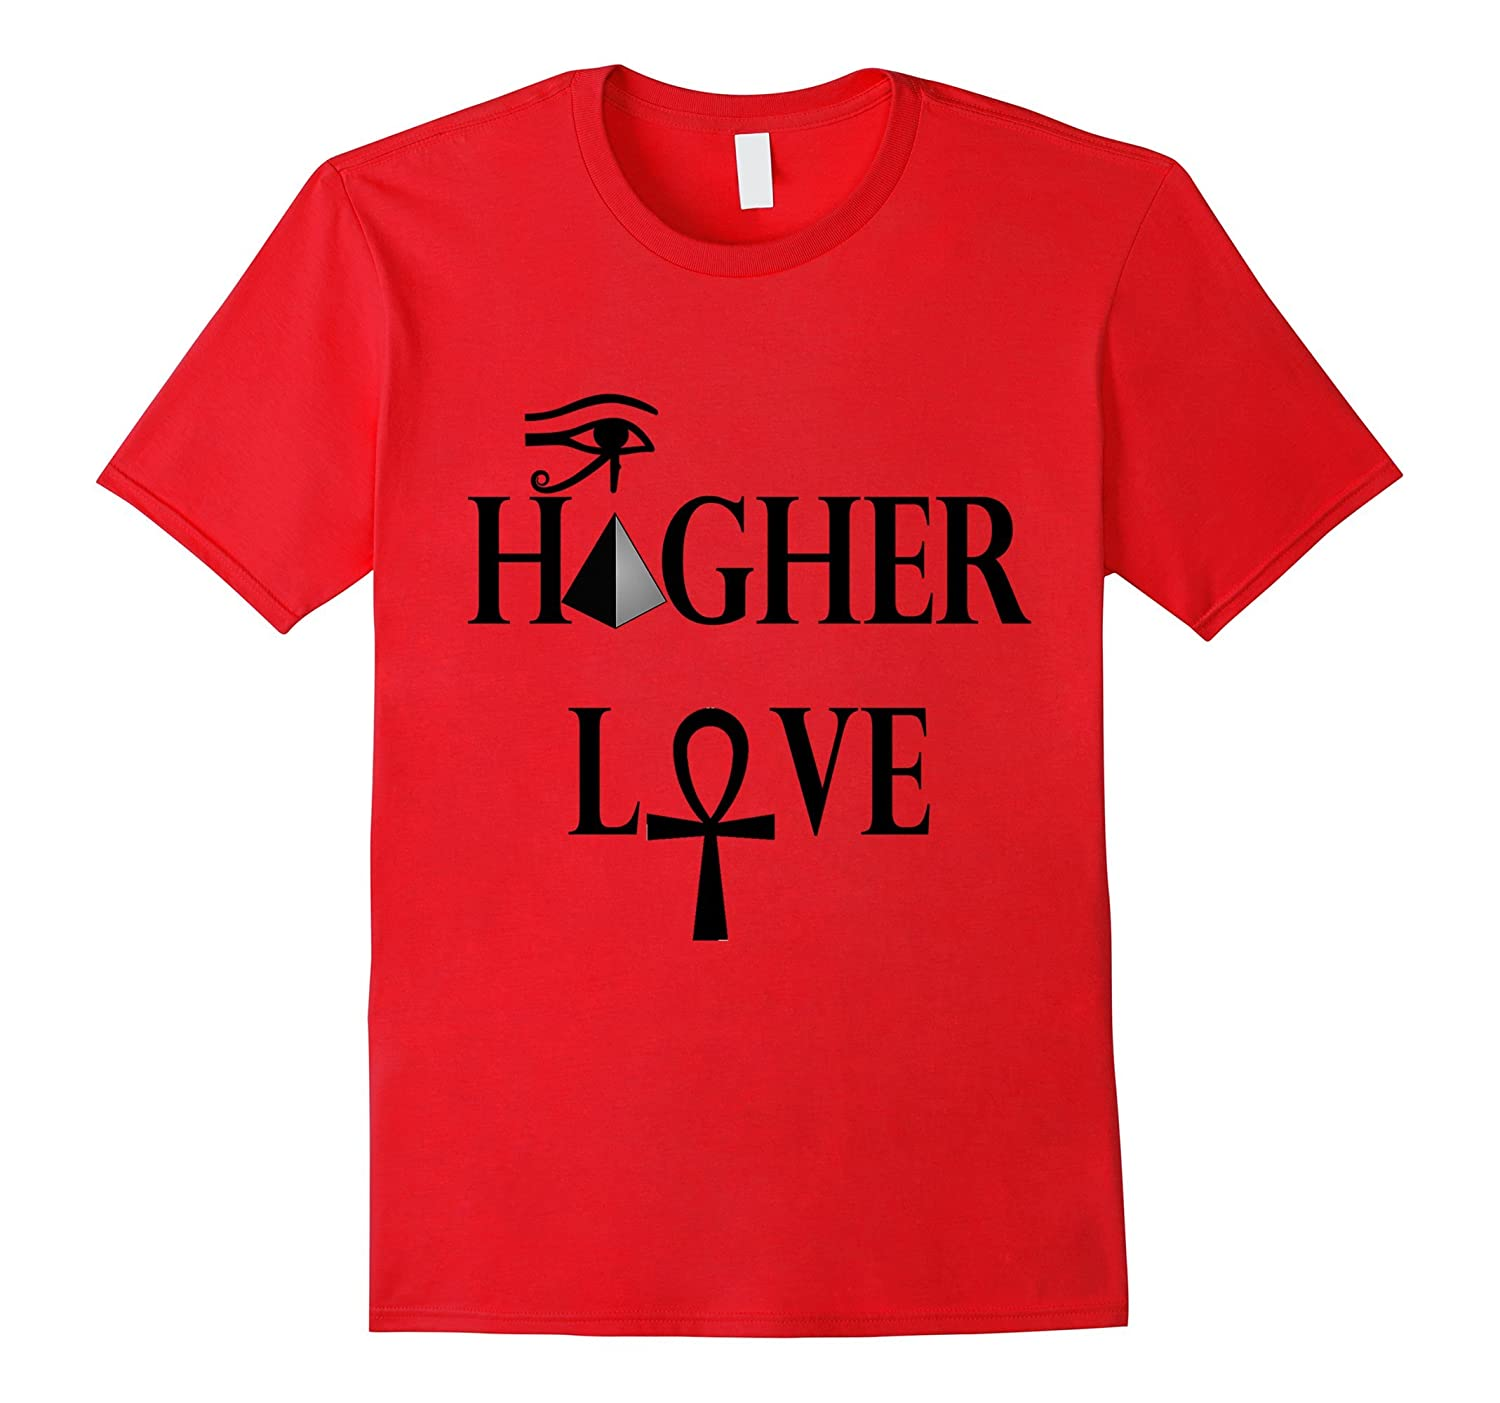 Egyptian T shirt Higher Love Pyramid-Tovacu